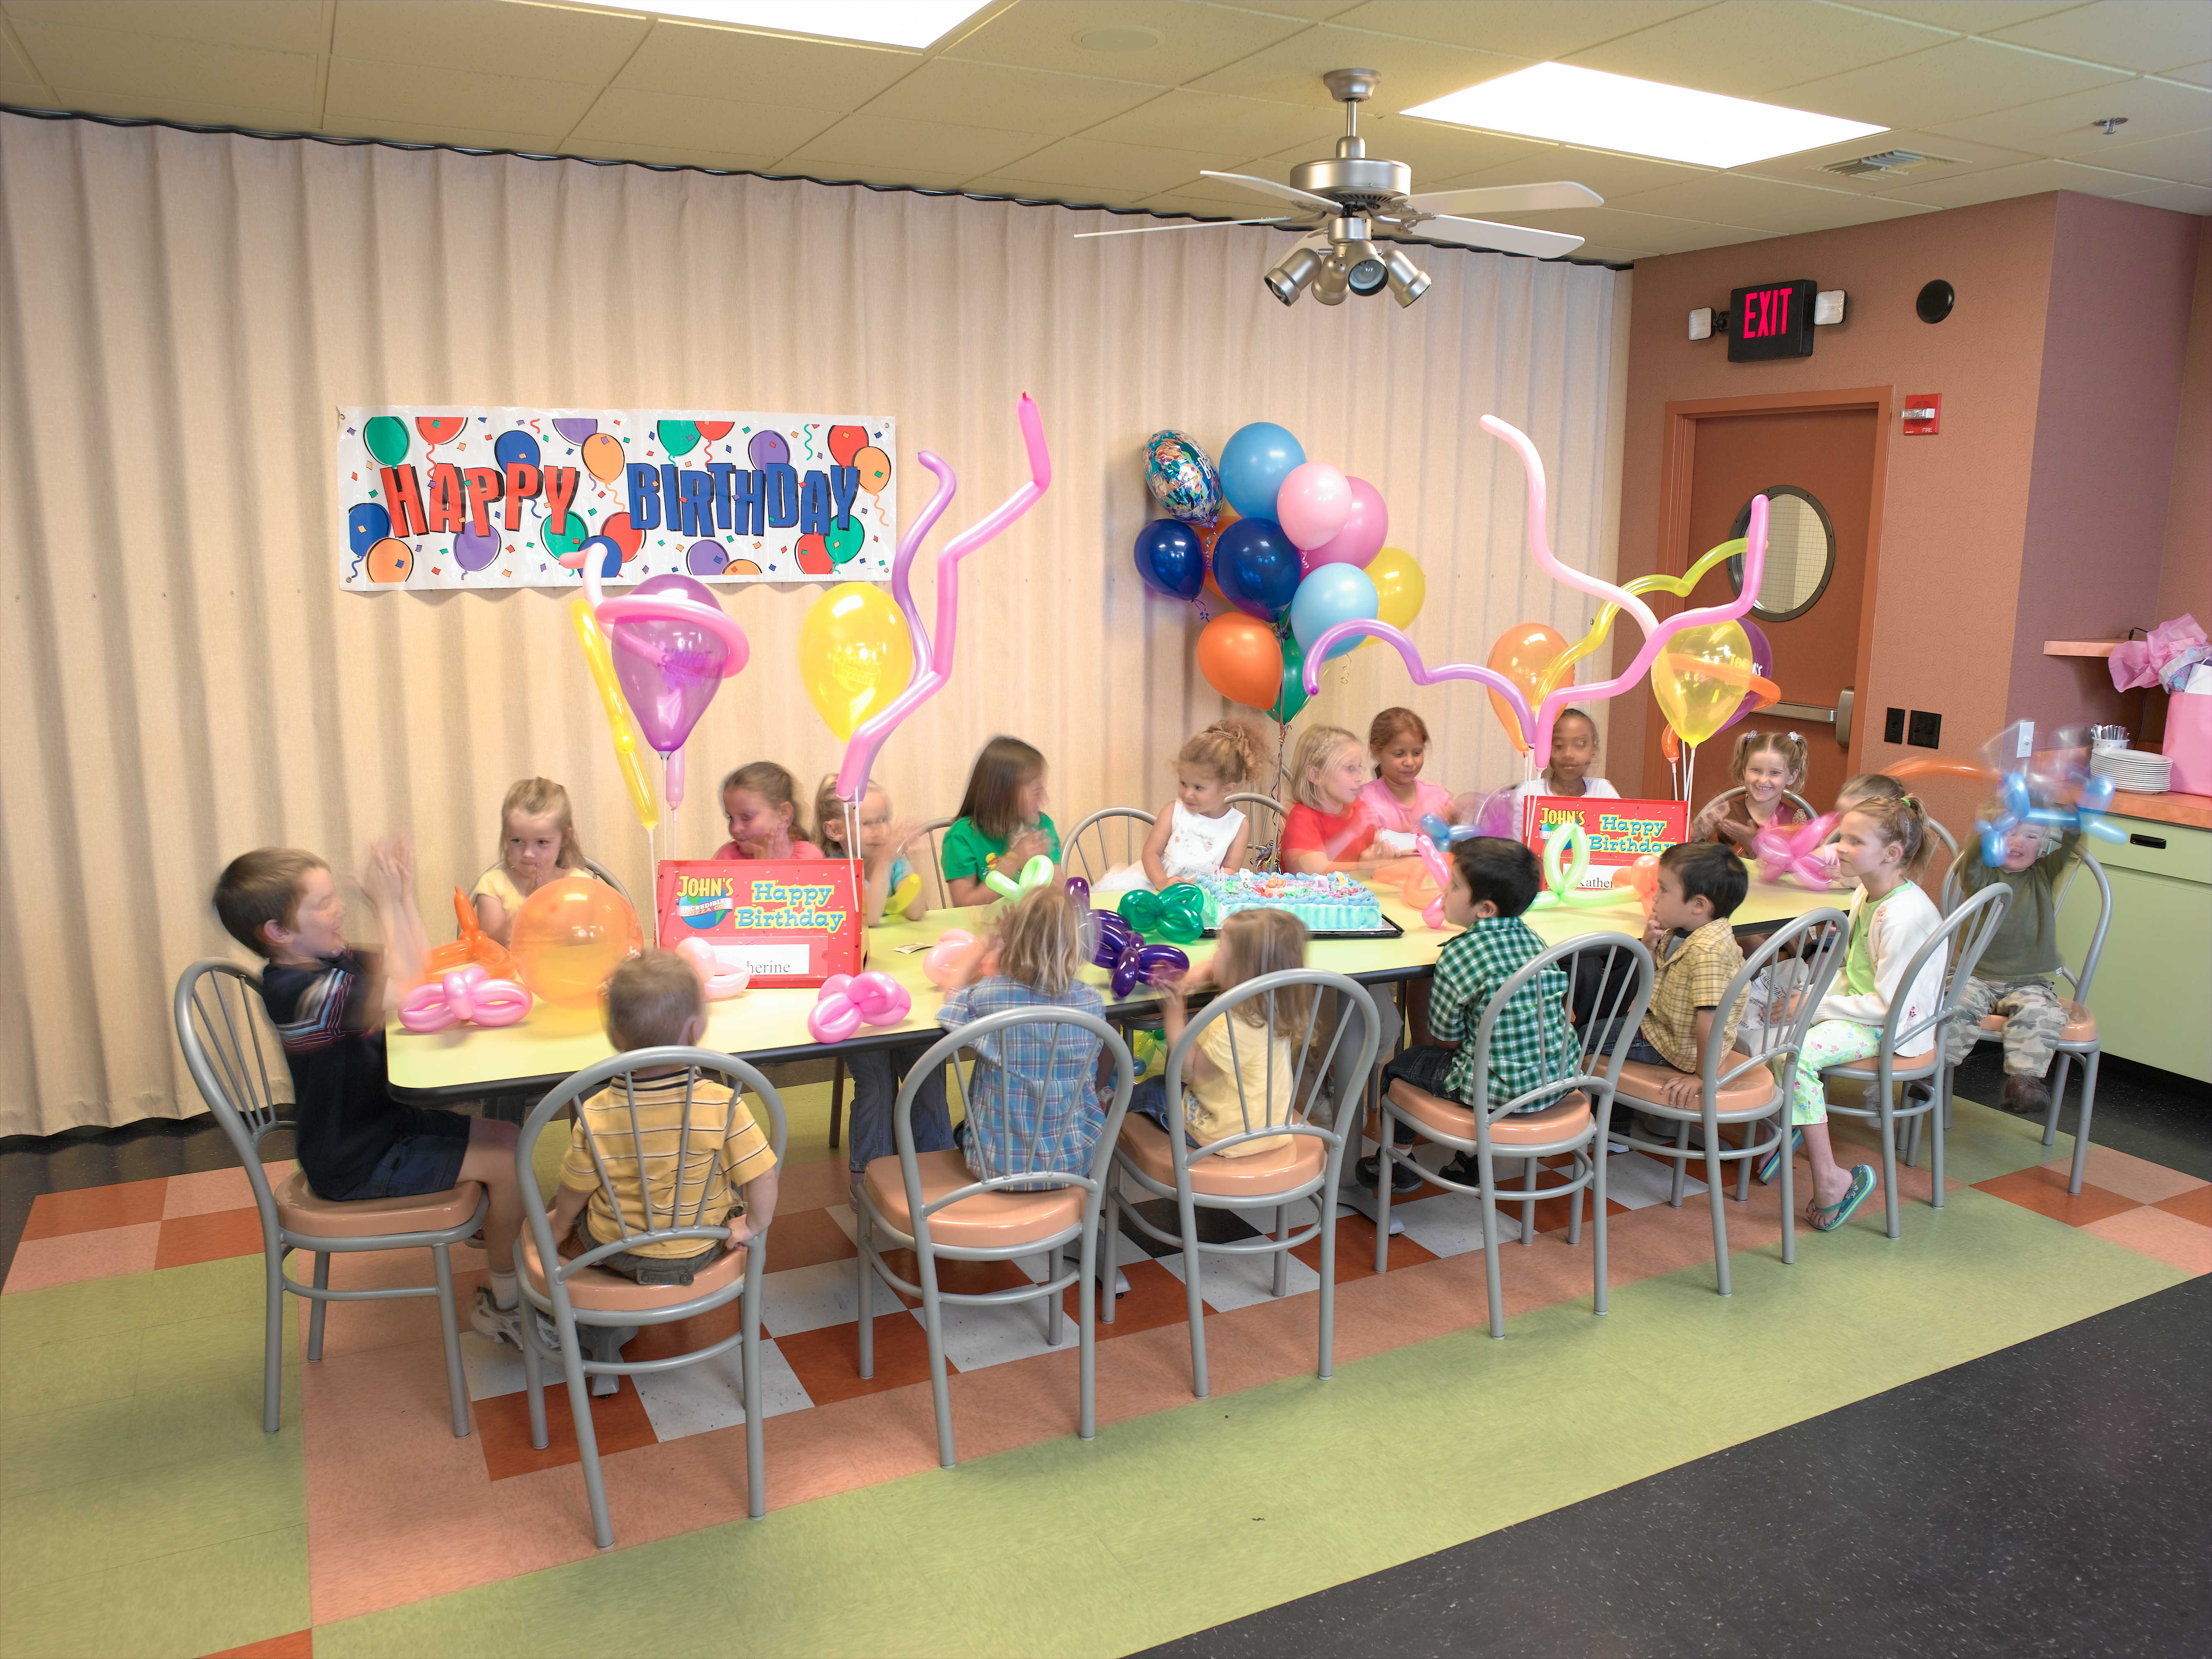 Ideas For Planning An Affordable Birthday Party For Your